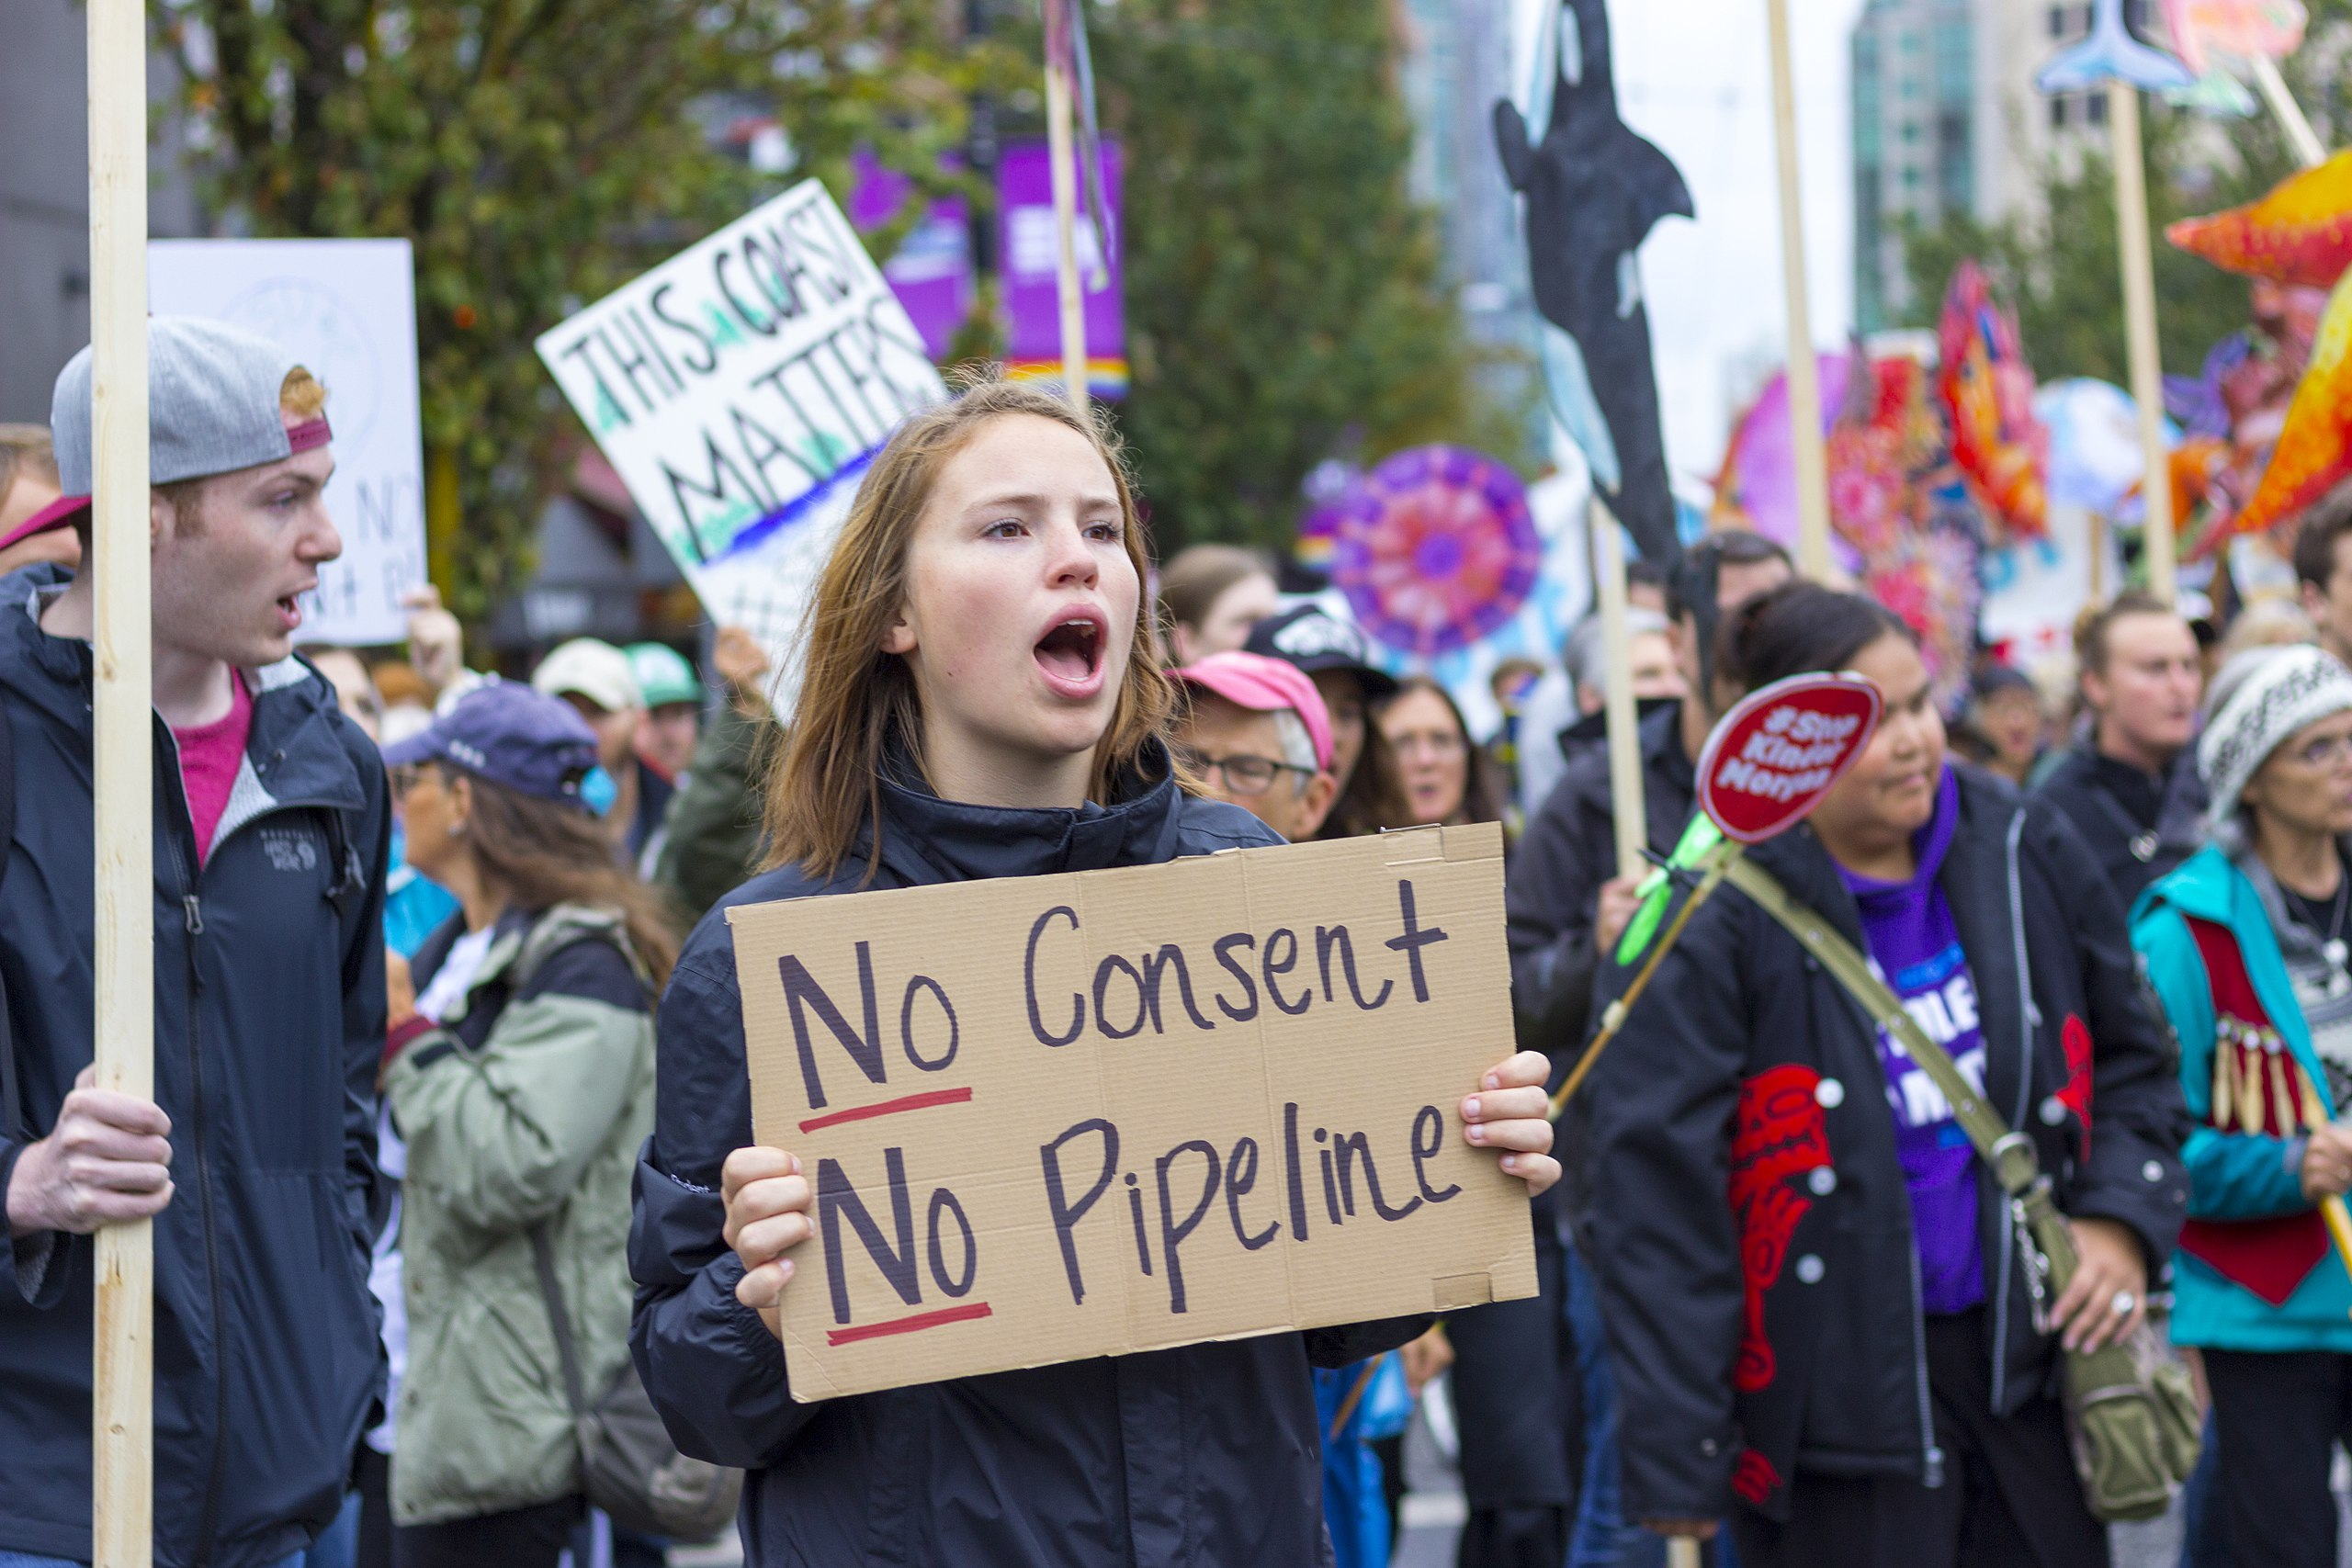 Protesters on Burnaby Mountain in Vancouver, BC, rally against the expansion of the tank farm project, with crude oil pipelines crossing Native Indian owned land through heavily populated ares of the city.  Photo by Wikipedia